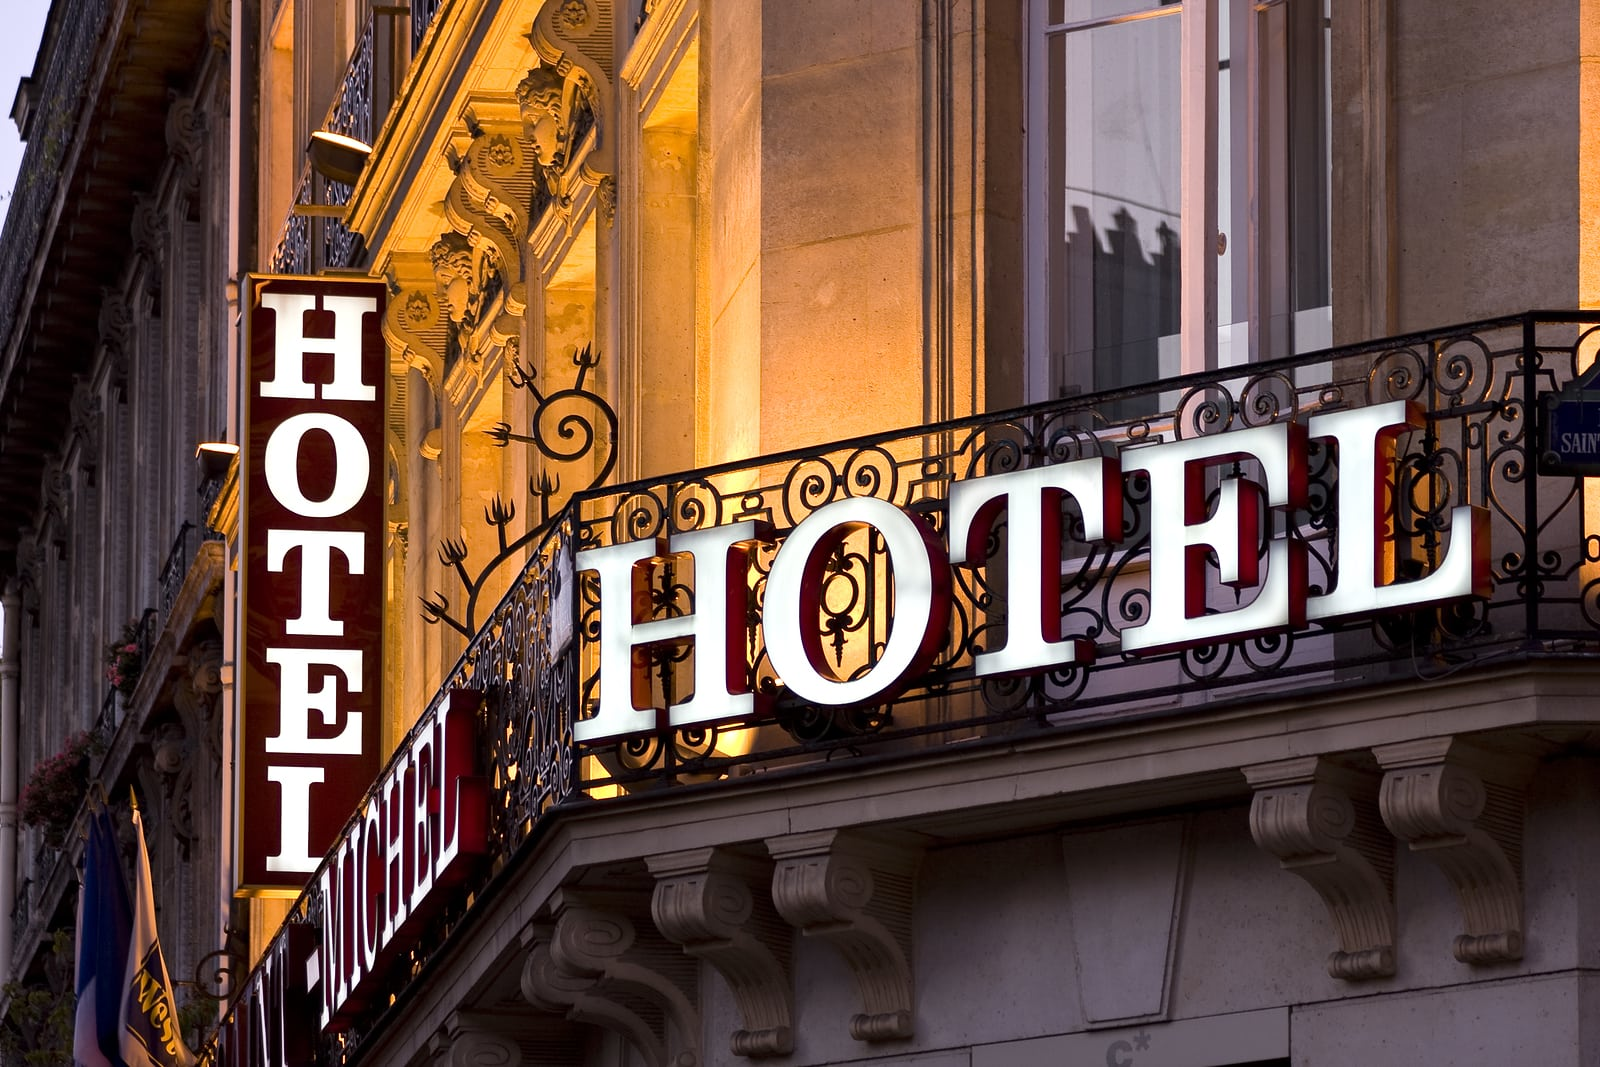 high quality, lit-up hotel sign